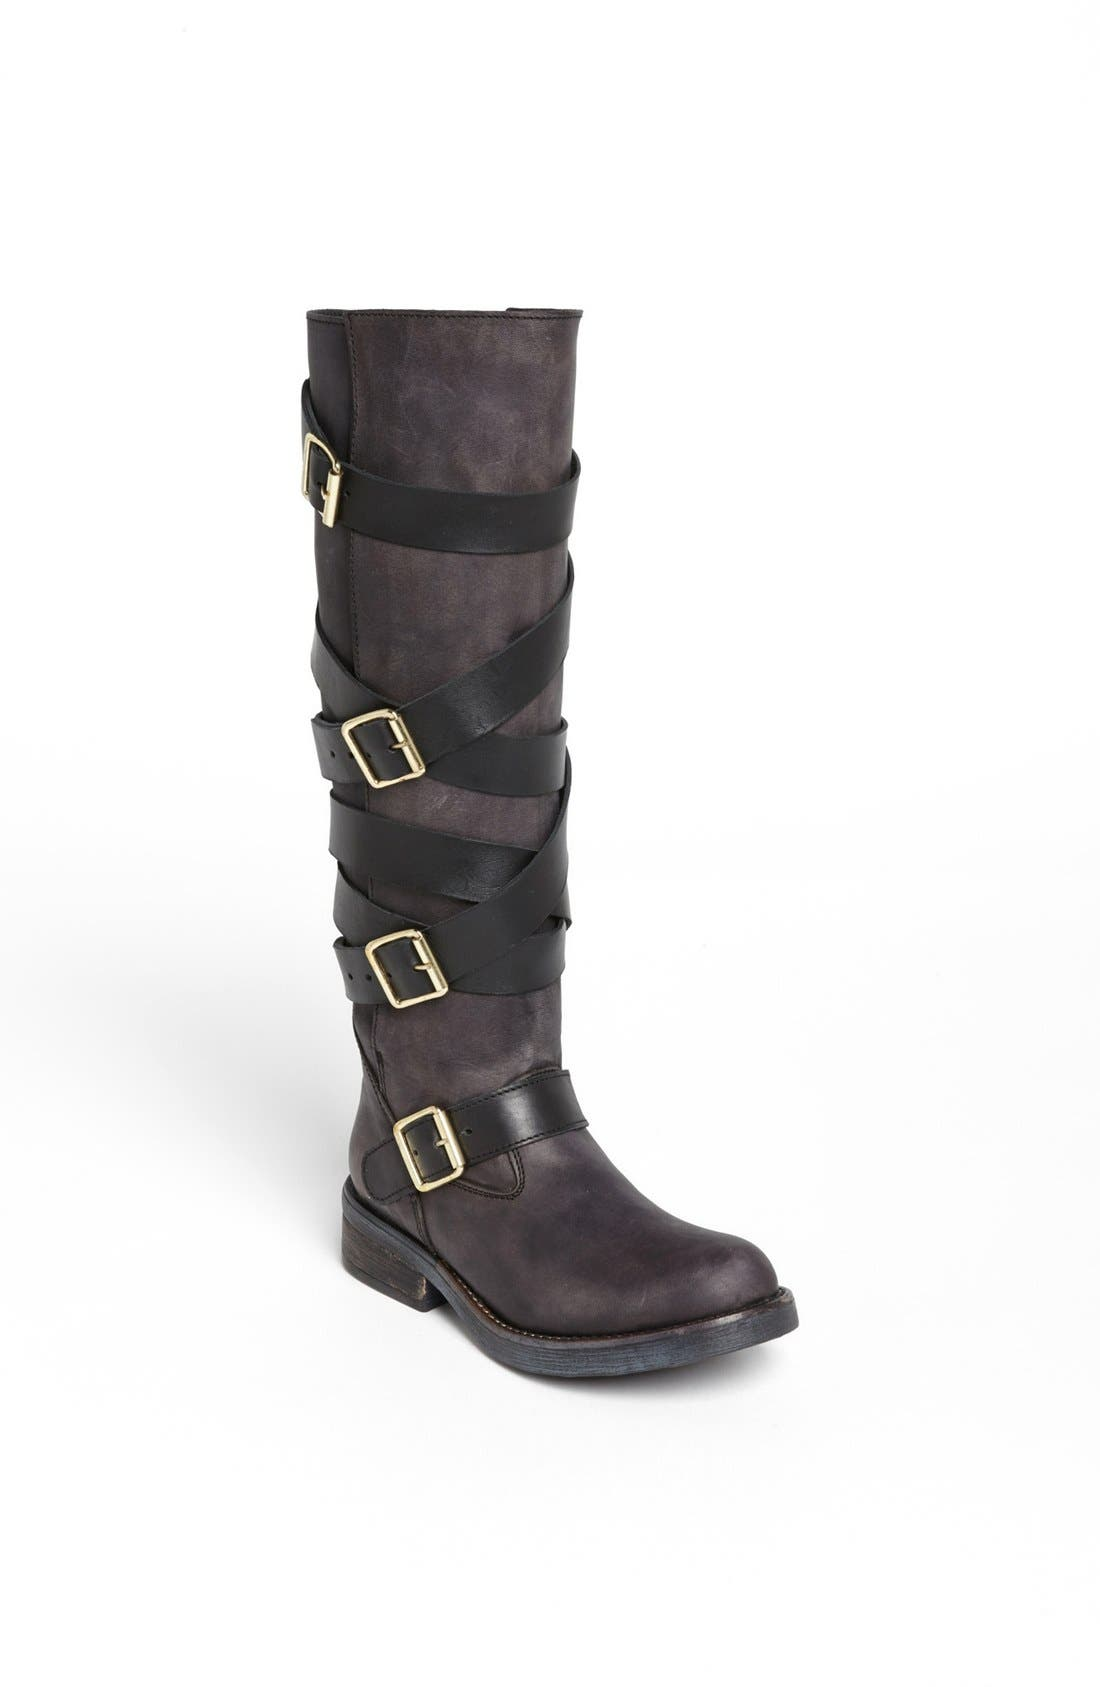 Main Image - Steve Madden 'Bryant' Belted Riding Boot